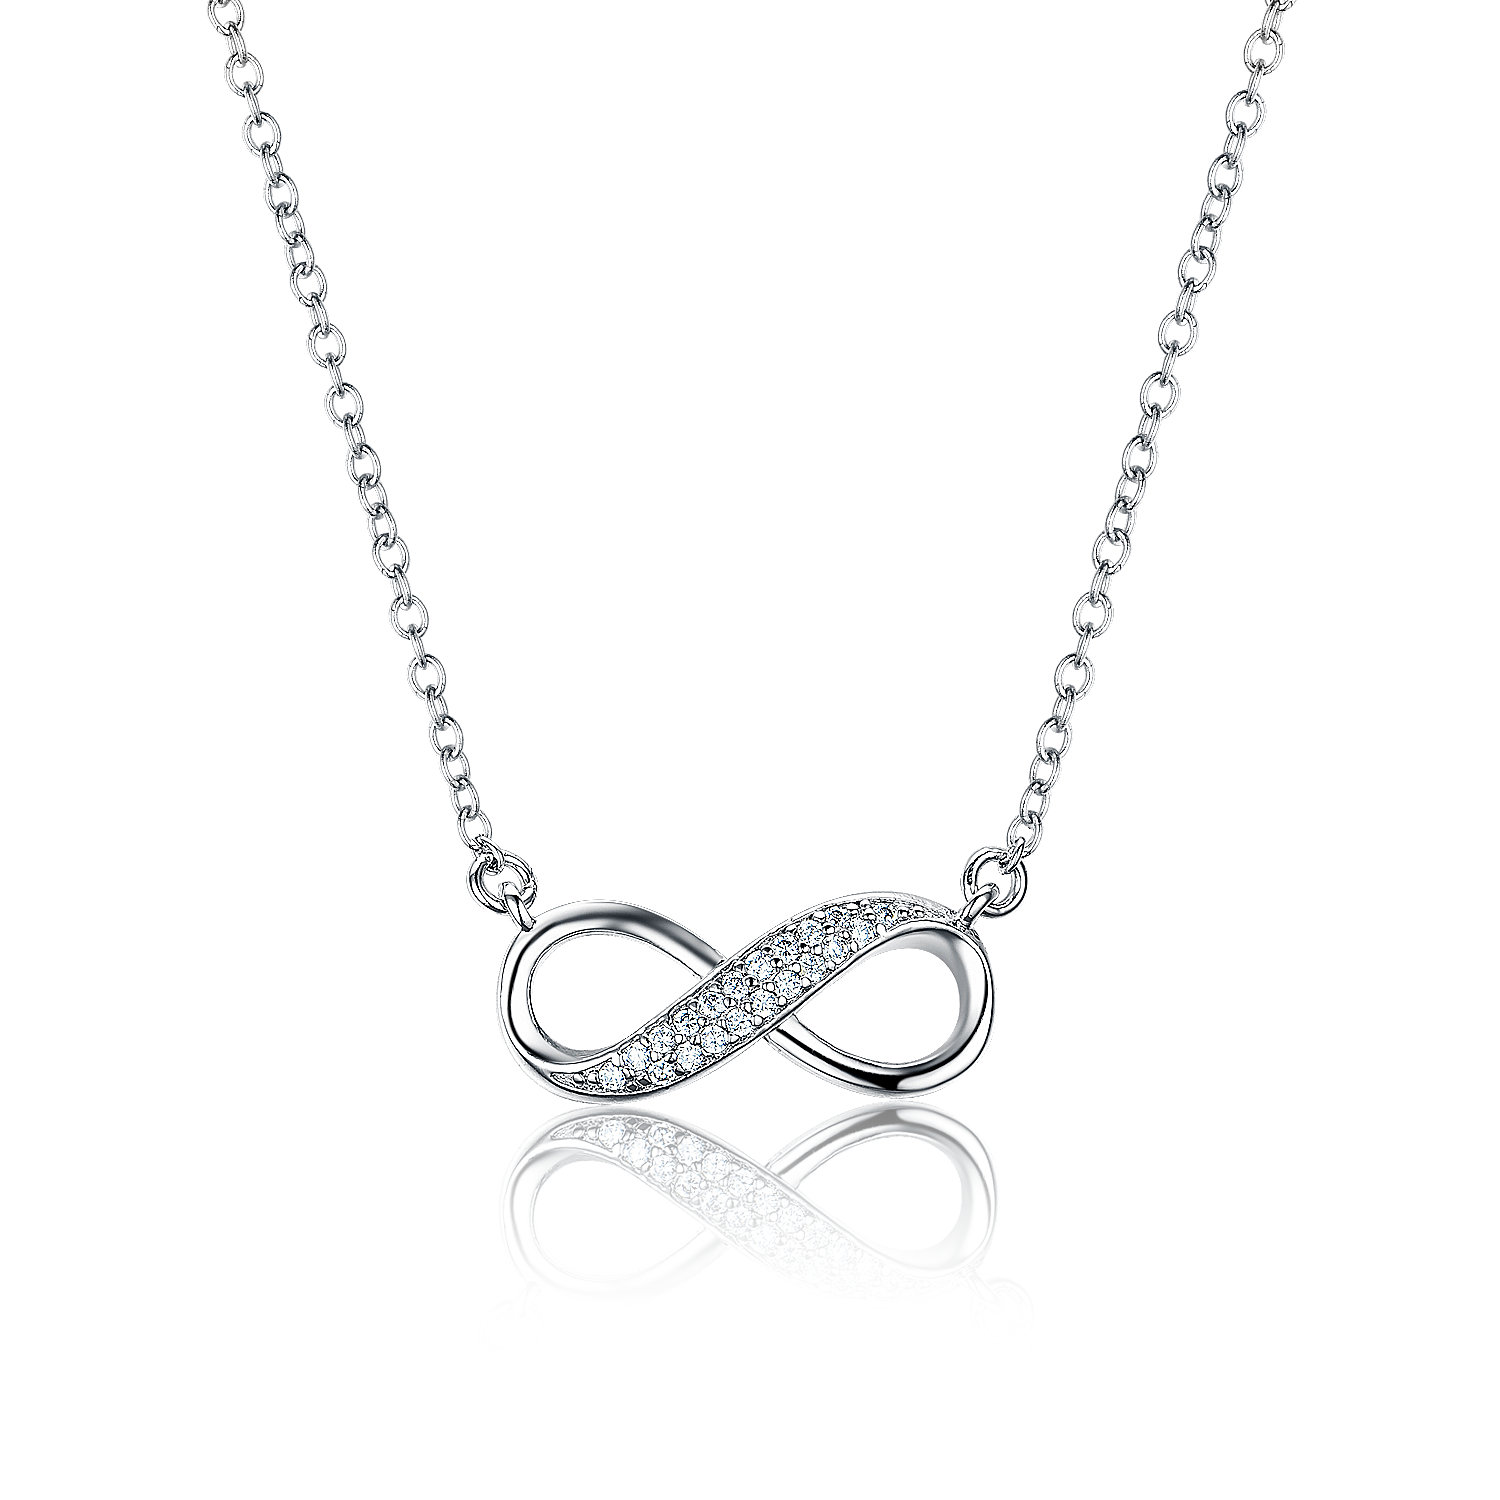 PE3502-Infinity Necklace with White CZ in Silver under Rhodium plating from China Jewelry Manufacturer